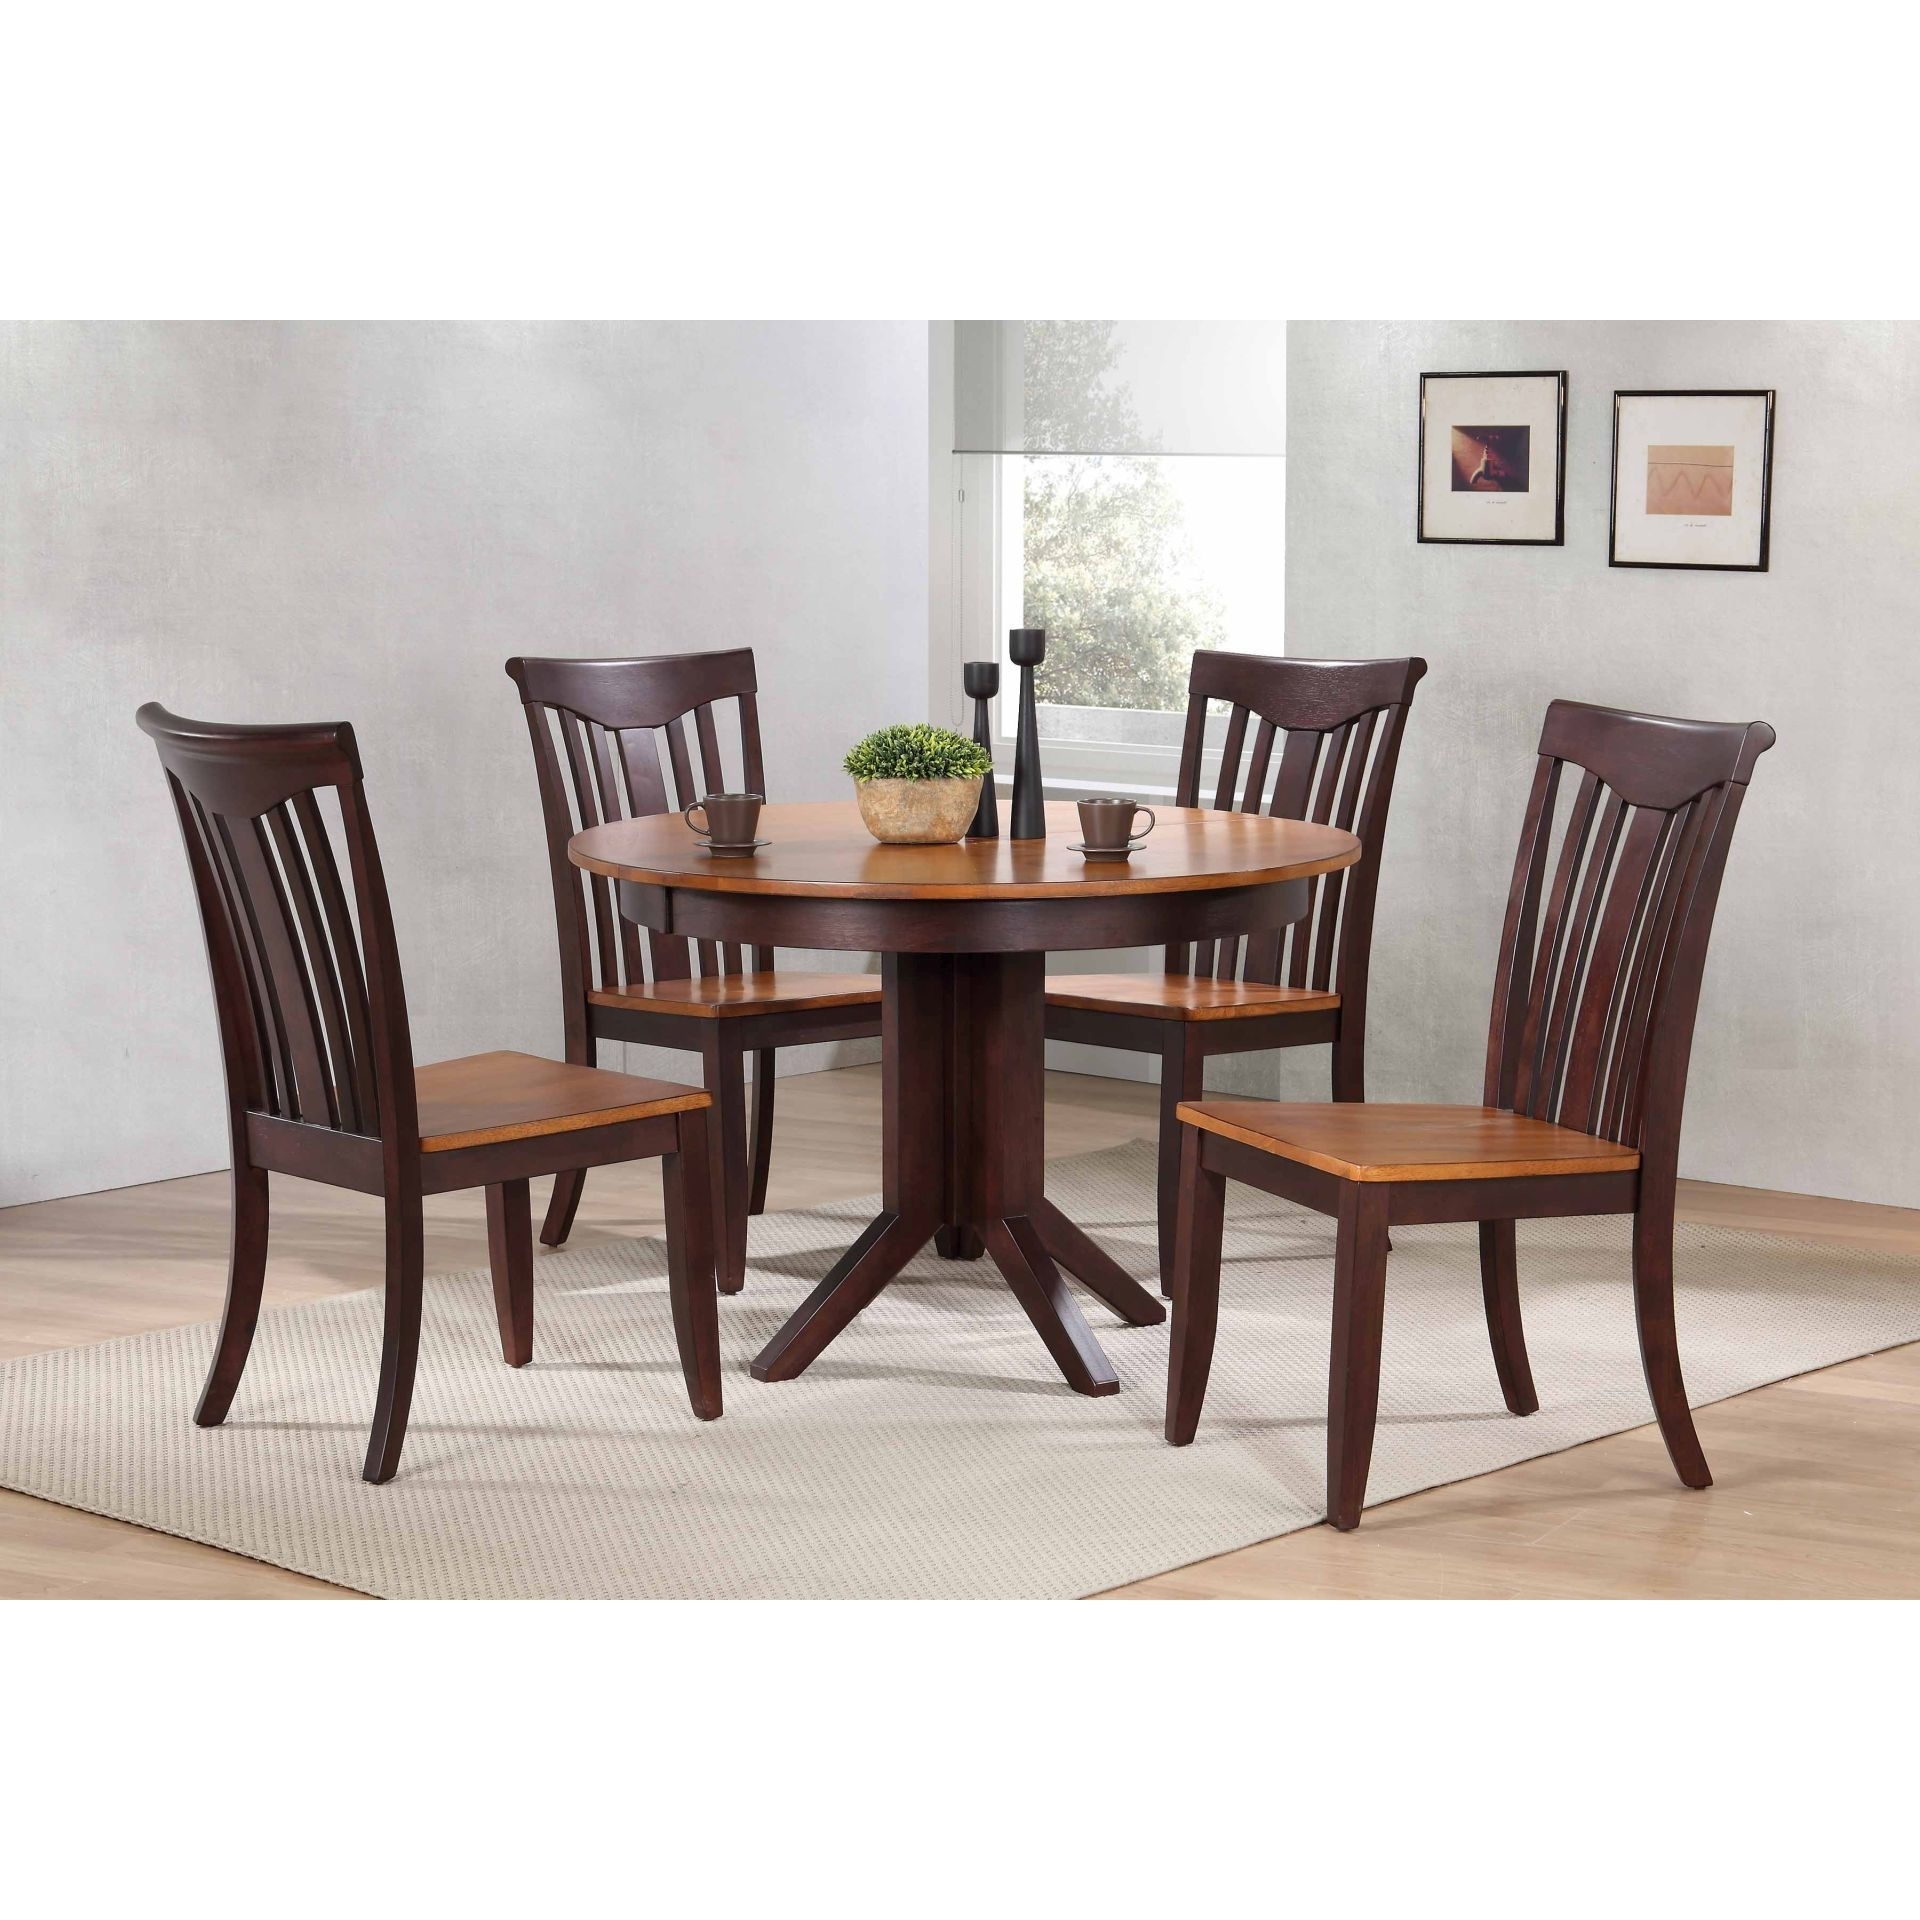 "Caden 6 Piece Dining Sets With Upholstered Side Chair Throughout Fashionable Shop Iconic Furniture Company 45""x45""x63"" Contemporary Whiskey/mocha (View 16 of 25)"